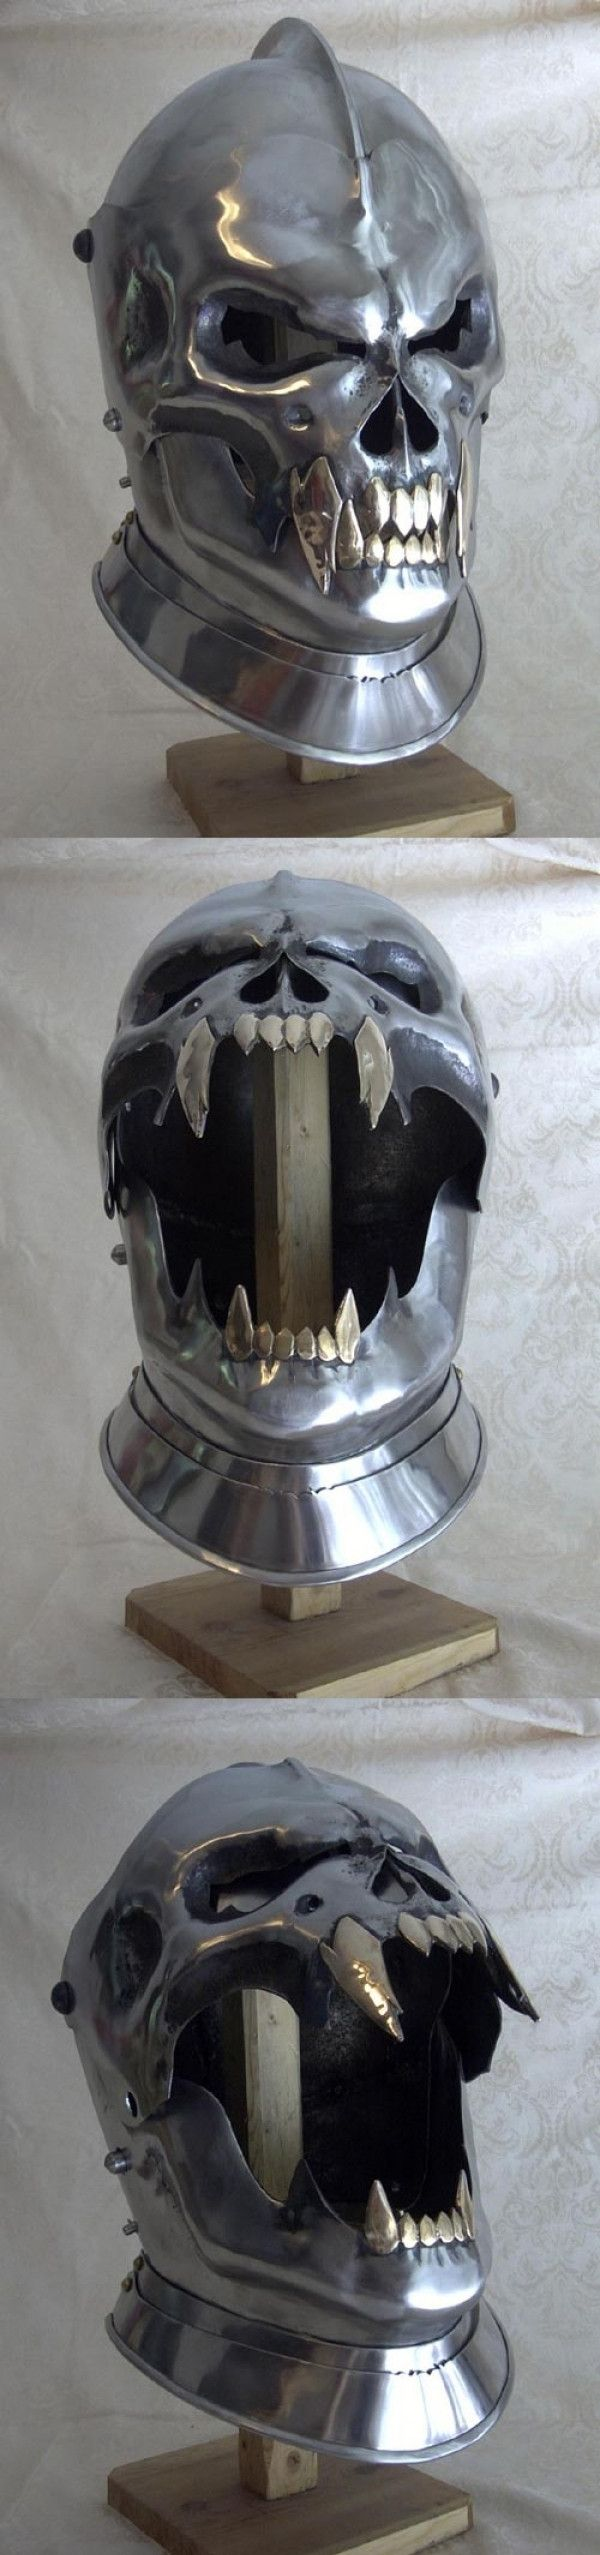 The most badass helmet ever crafted - Imgur